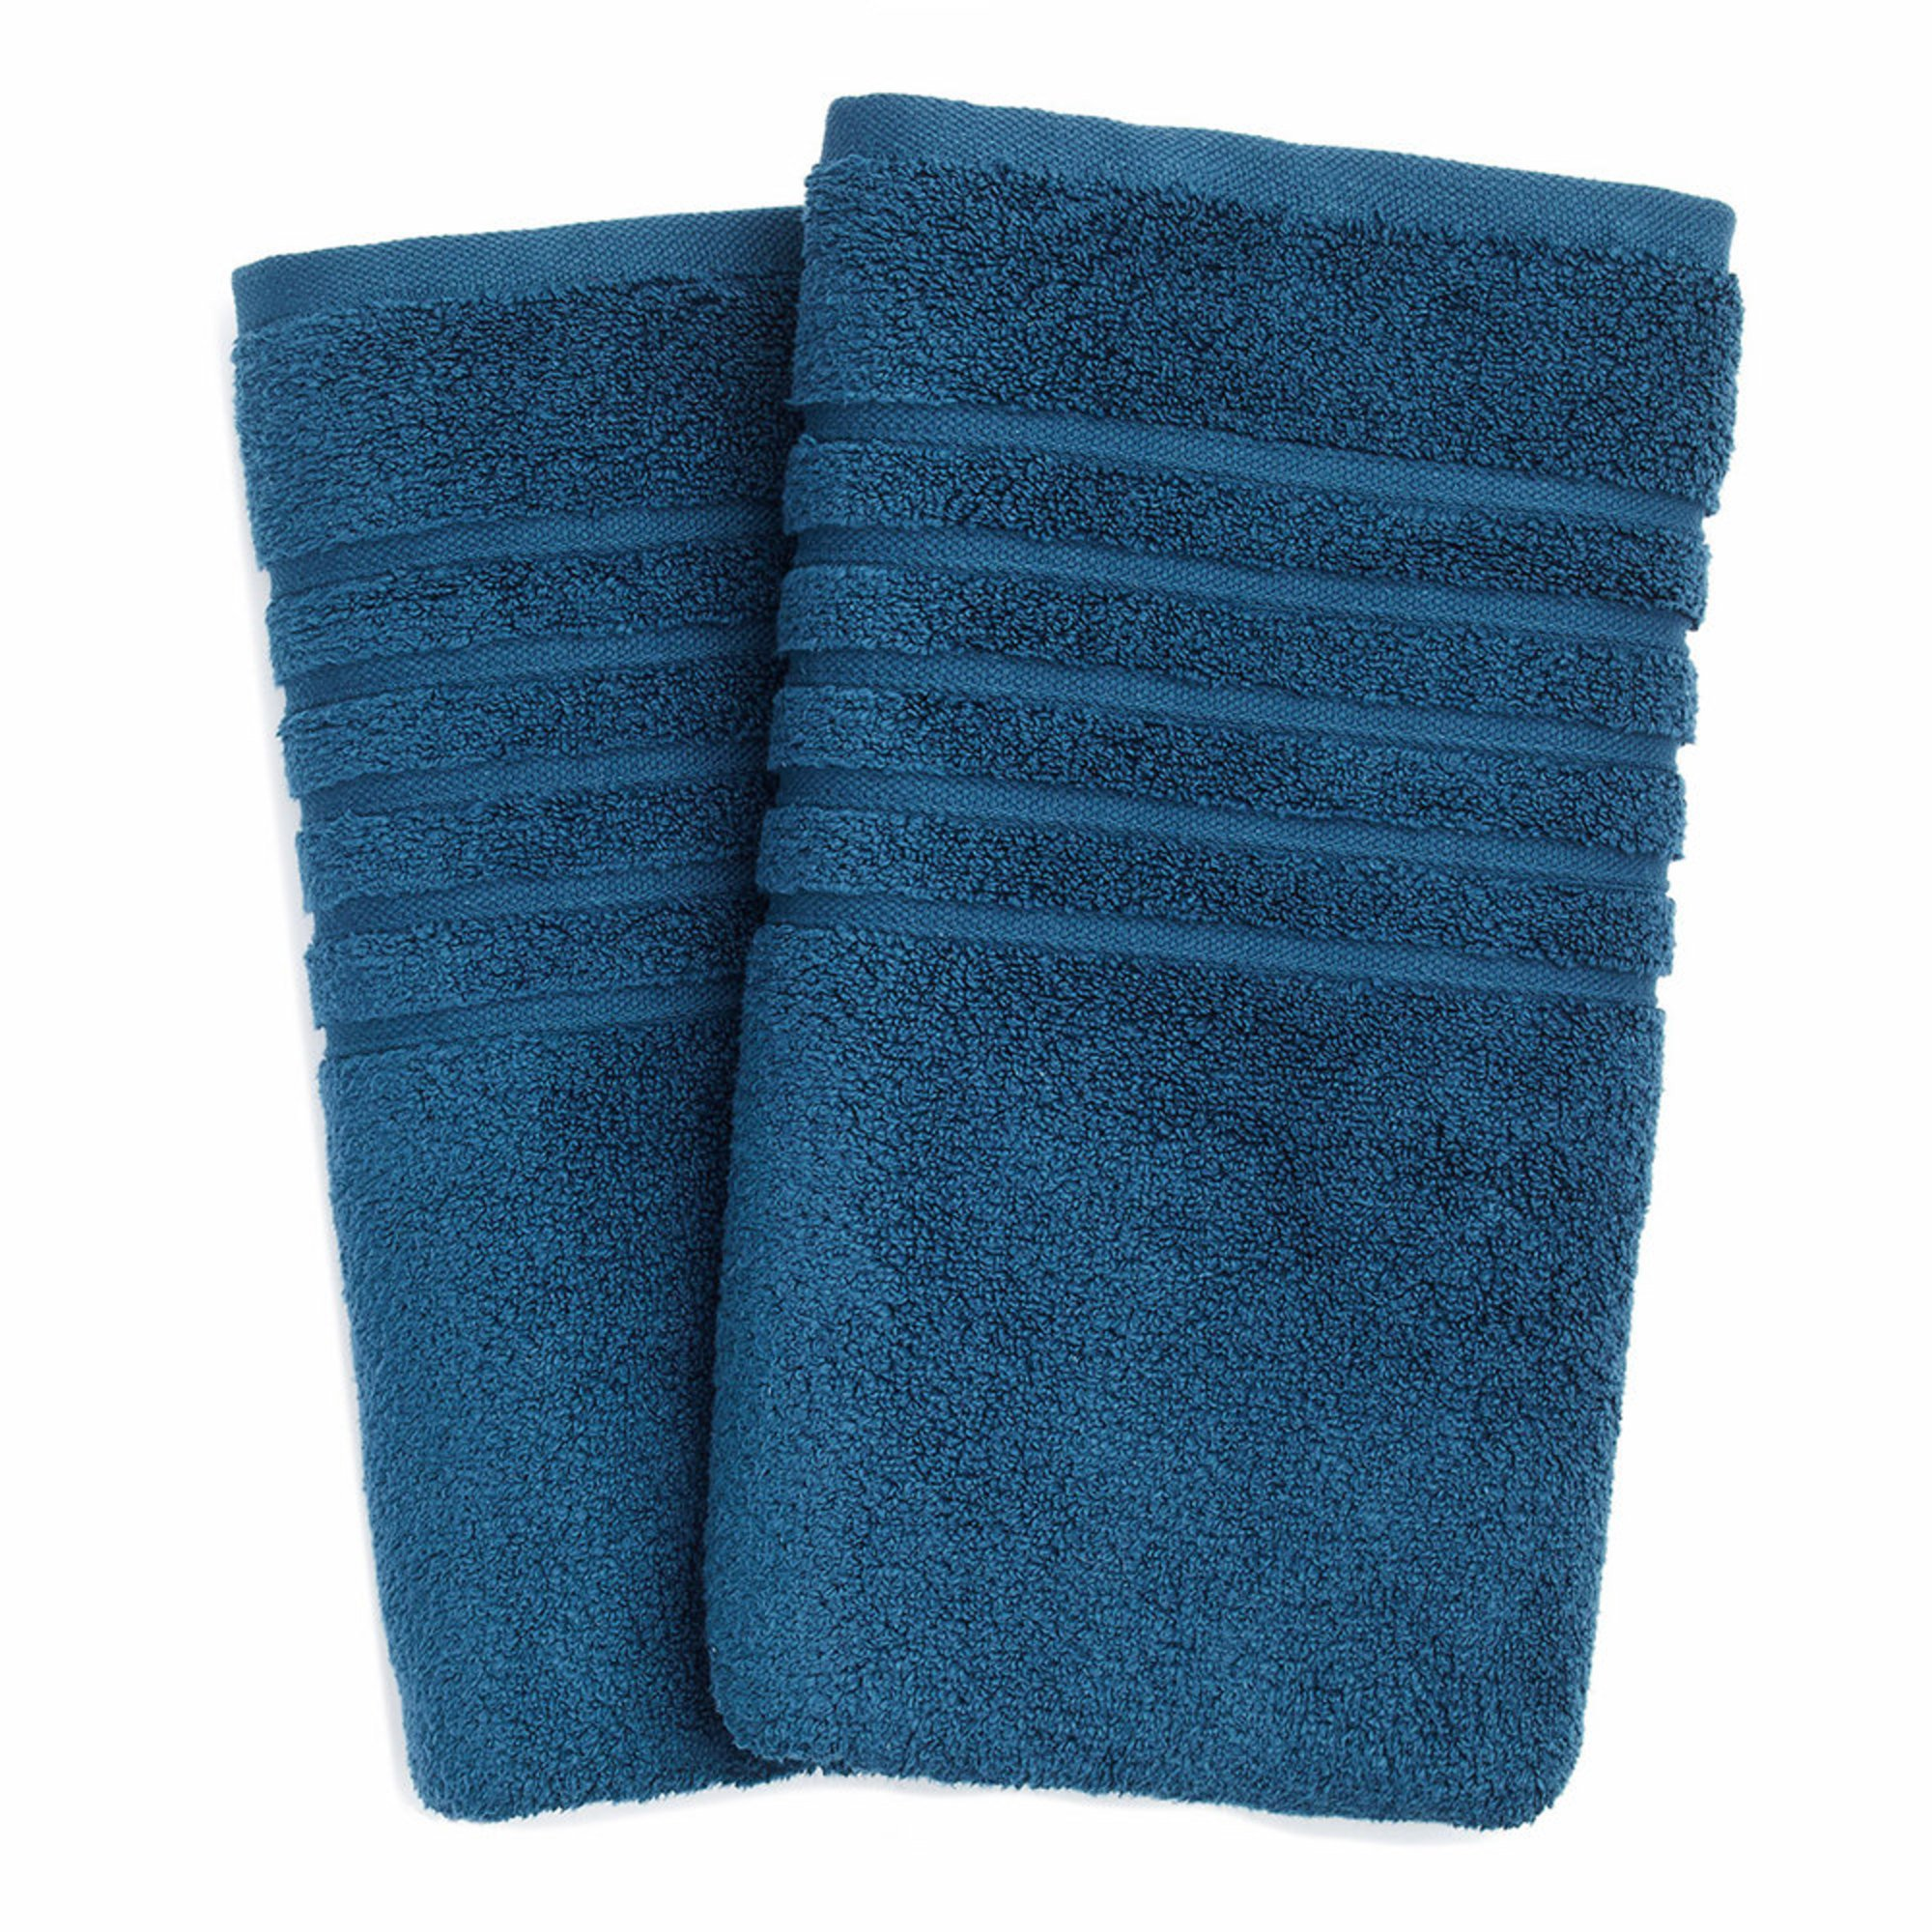 Peacock bathroom towels - Hotel Collection Hotel Collection Microcotton Bath Towel Peacock